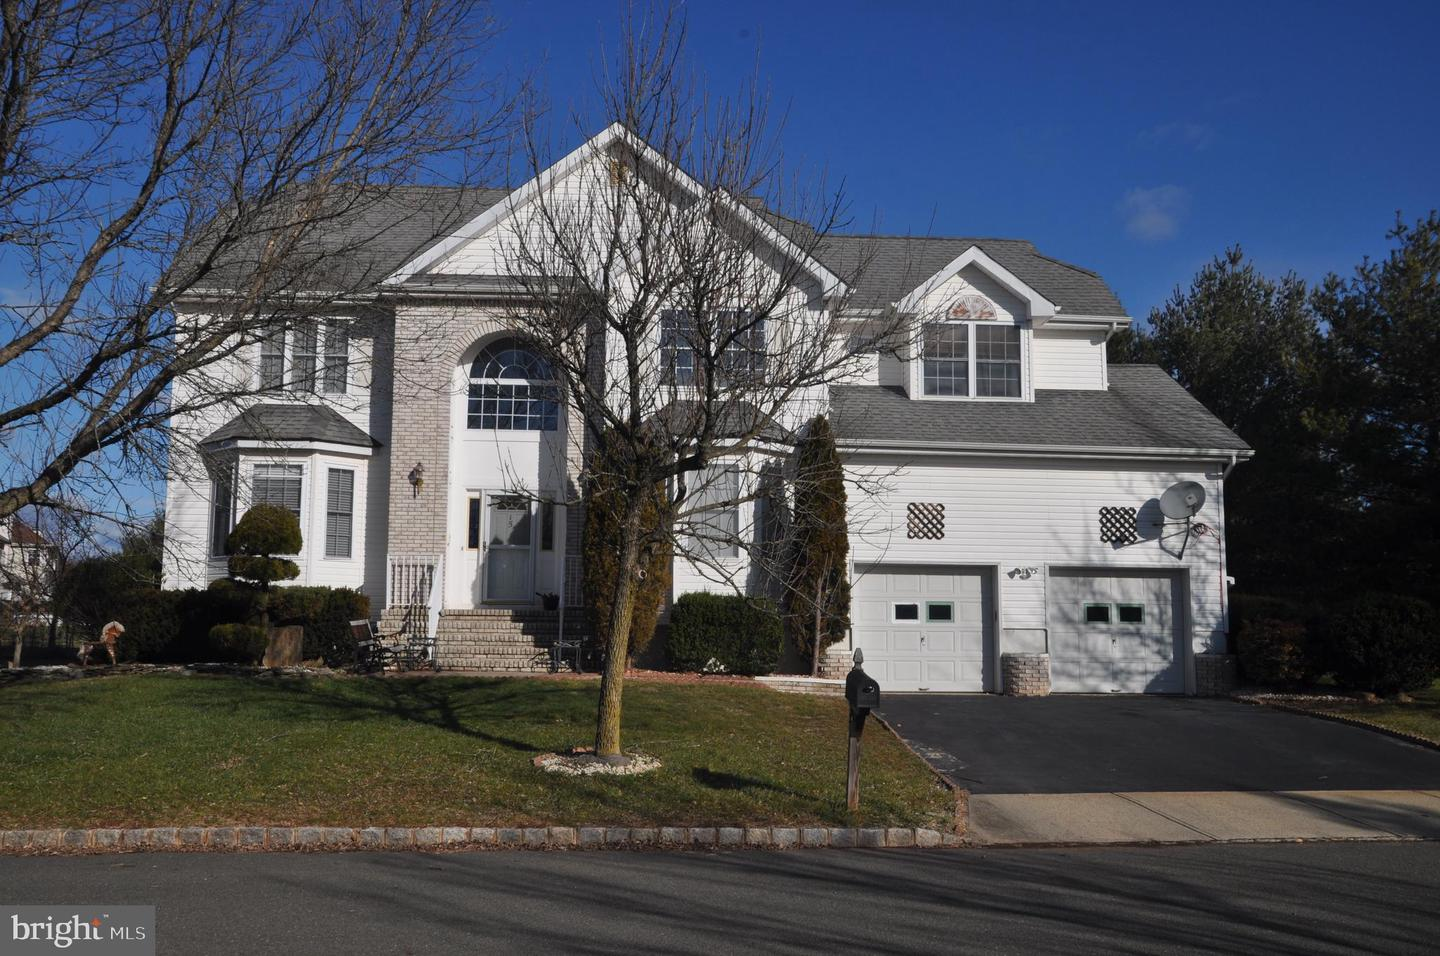 Single Family Homes for Sale at 15 MCPHERSON Lane Belle Mead, New Jersey 08502 United States